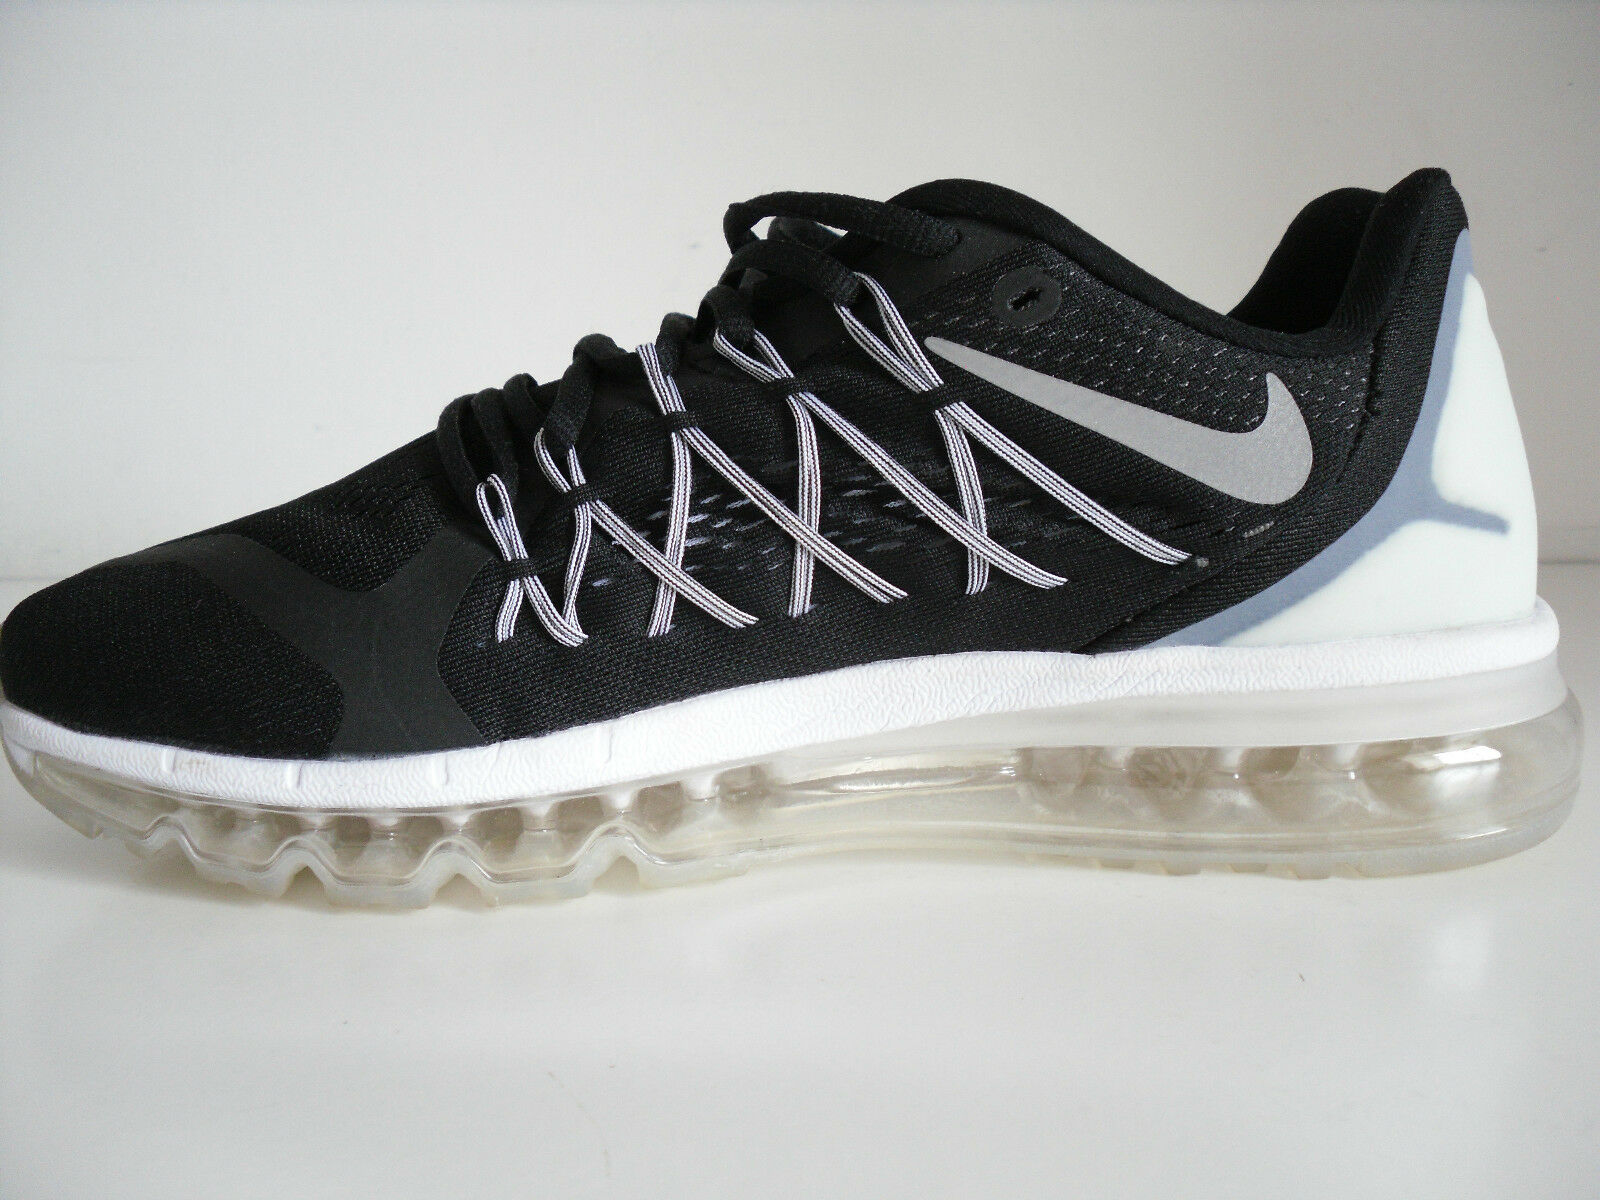 Nike-Air-max-2016-size-UK-11 small fitment, more more more like (UK-10) f98bfc